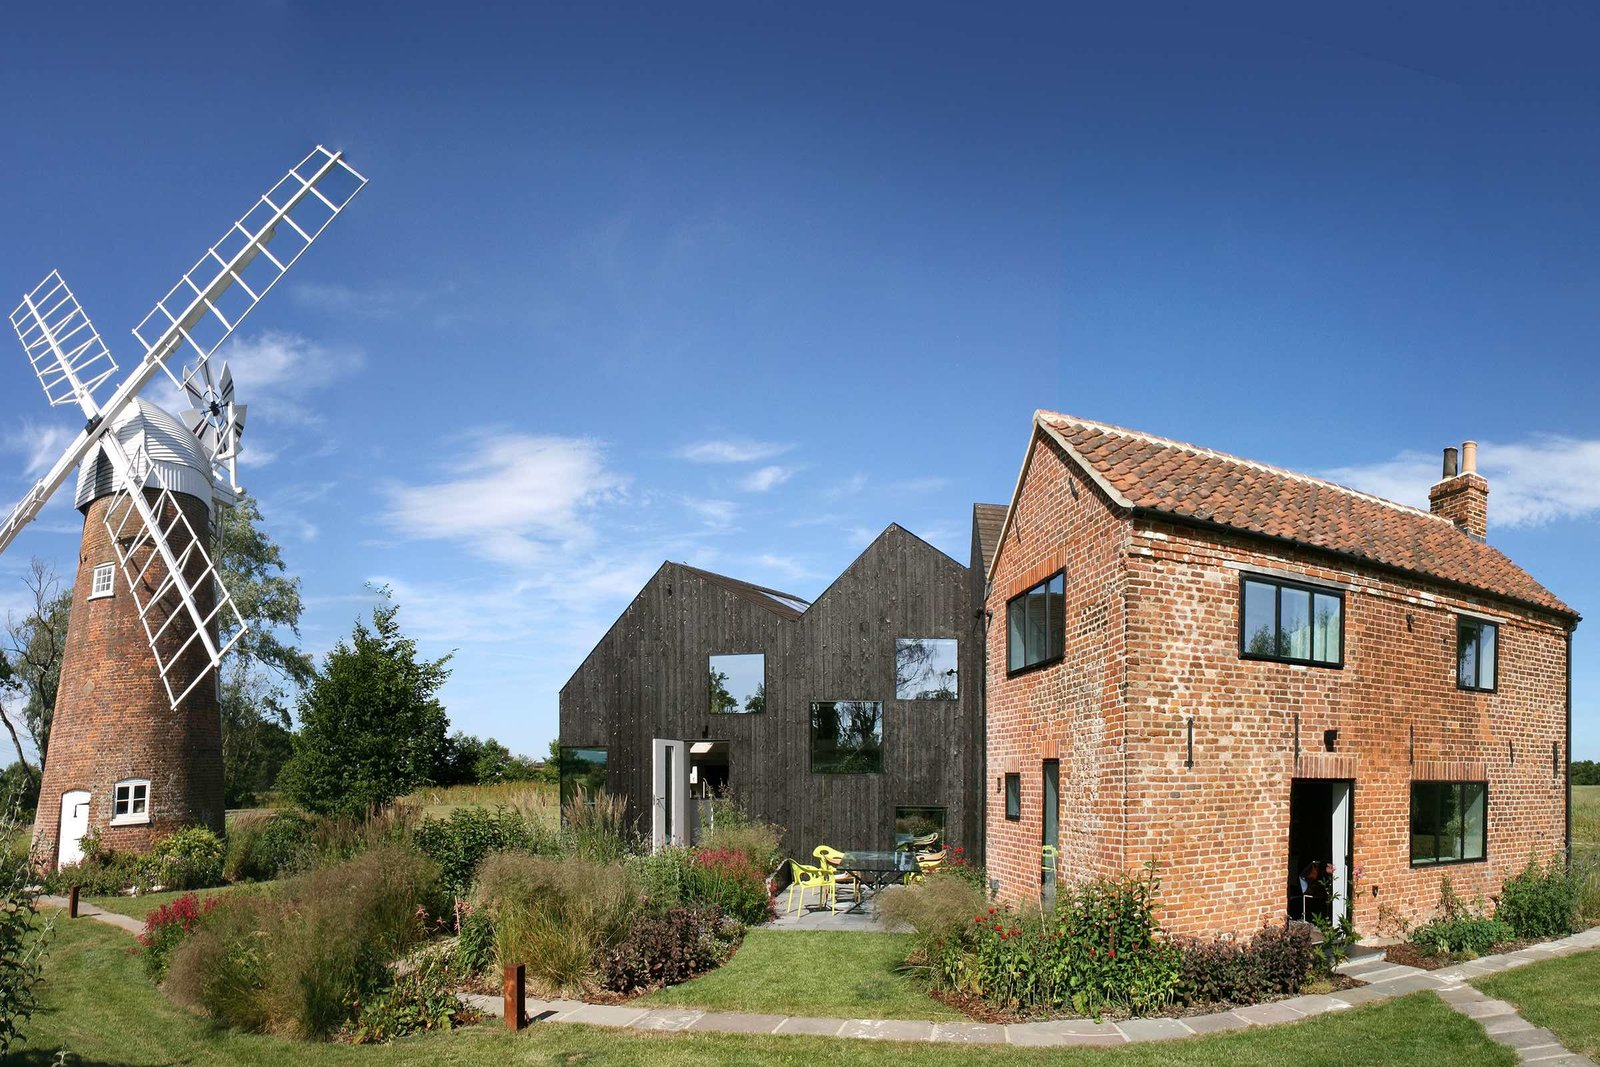 This sensitively restore old mill keeper's cottage on the bank of Norfolk's River Ant has a new addition made from solid laminated wood that is a shadow of the original cottage. Tagged: Exterior, House, Brick Siding Material, and Wood Siding Material.  Best Photos from 9 Traditional-Turned-Modern Cottages You Can Rent in the UK